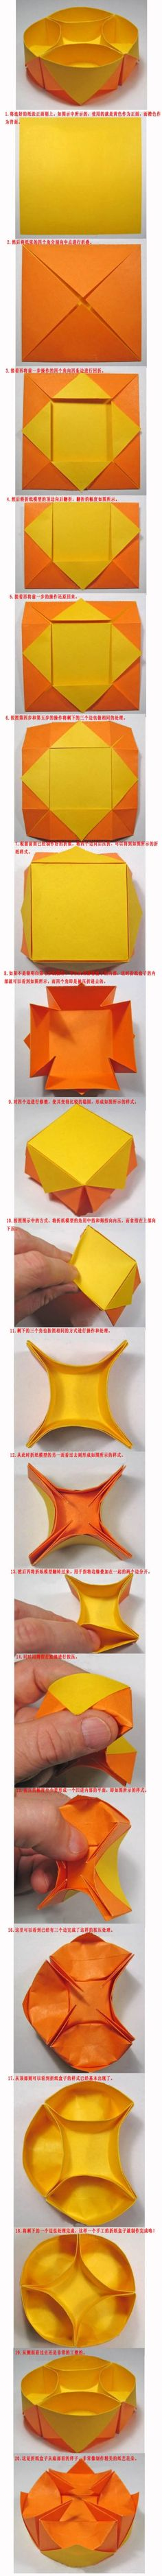 Origami Bowl with Compartments - photo diagrams.